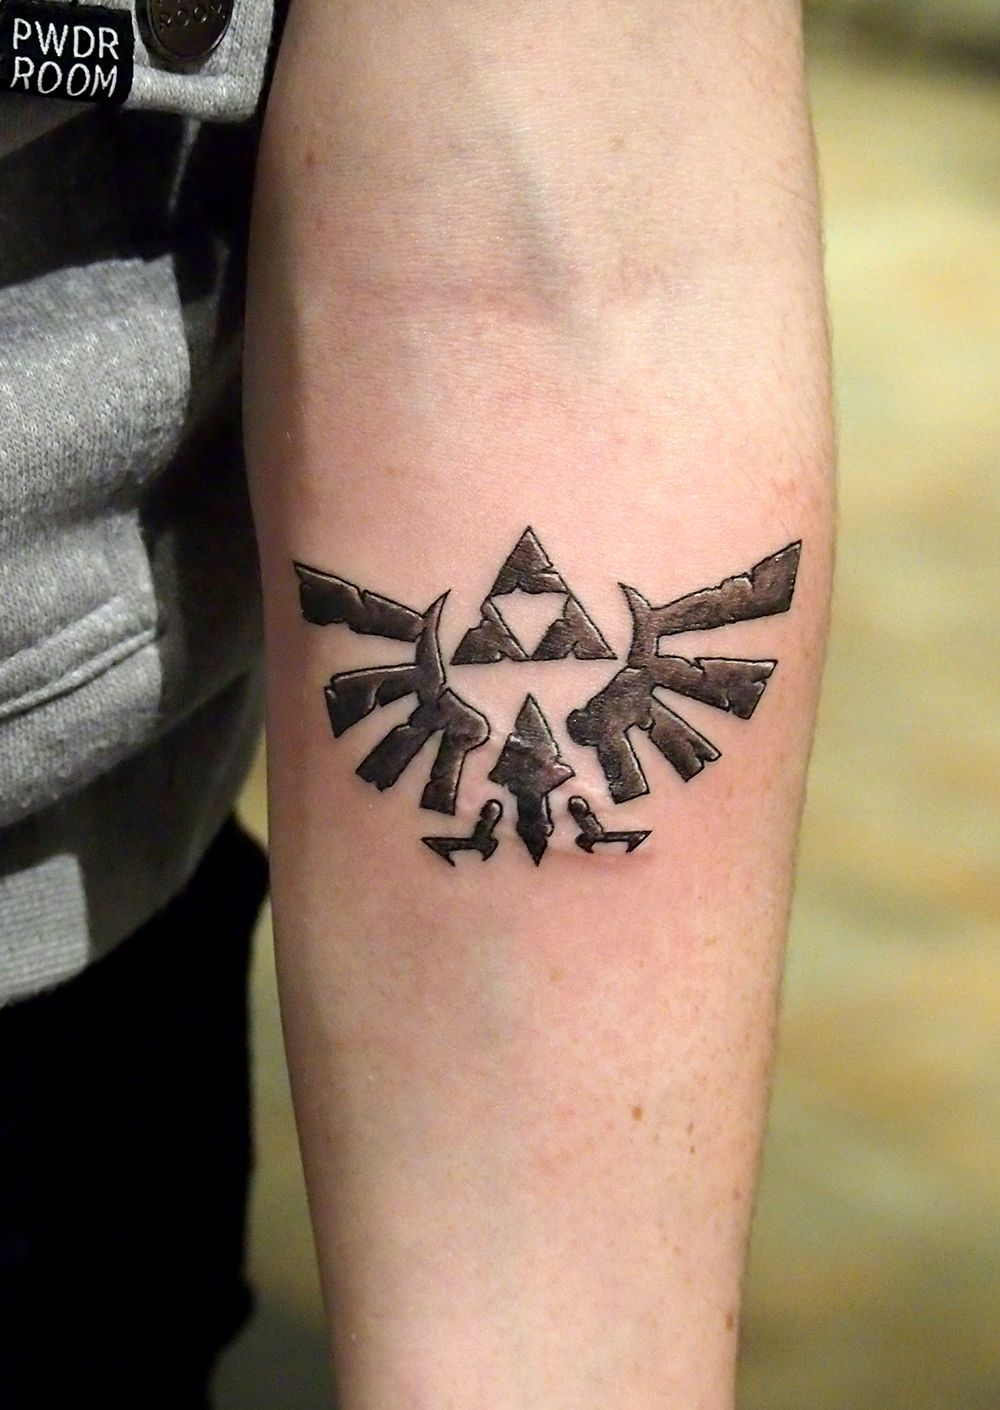 I love the detail on this Zelda triforce by TylerATD